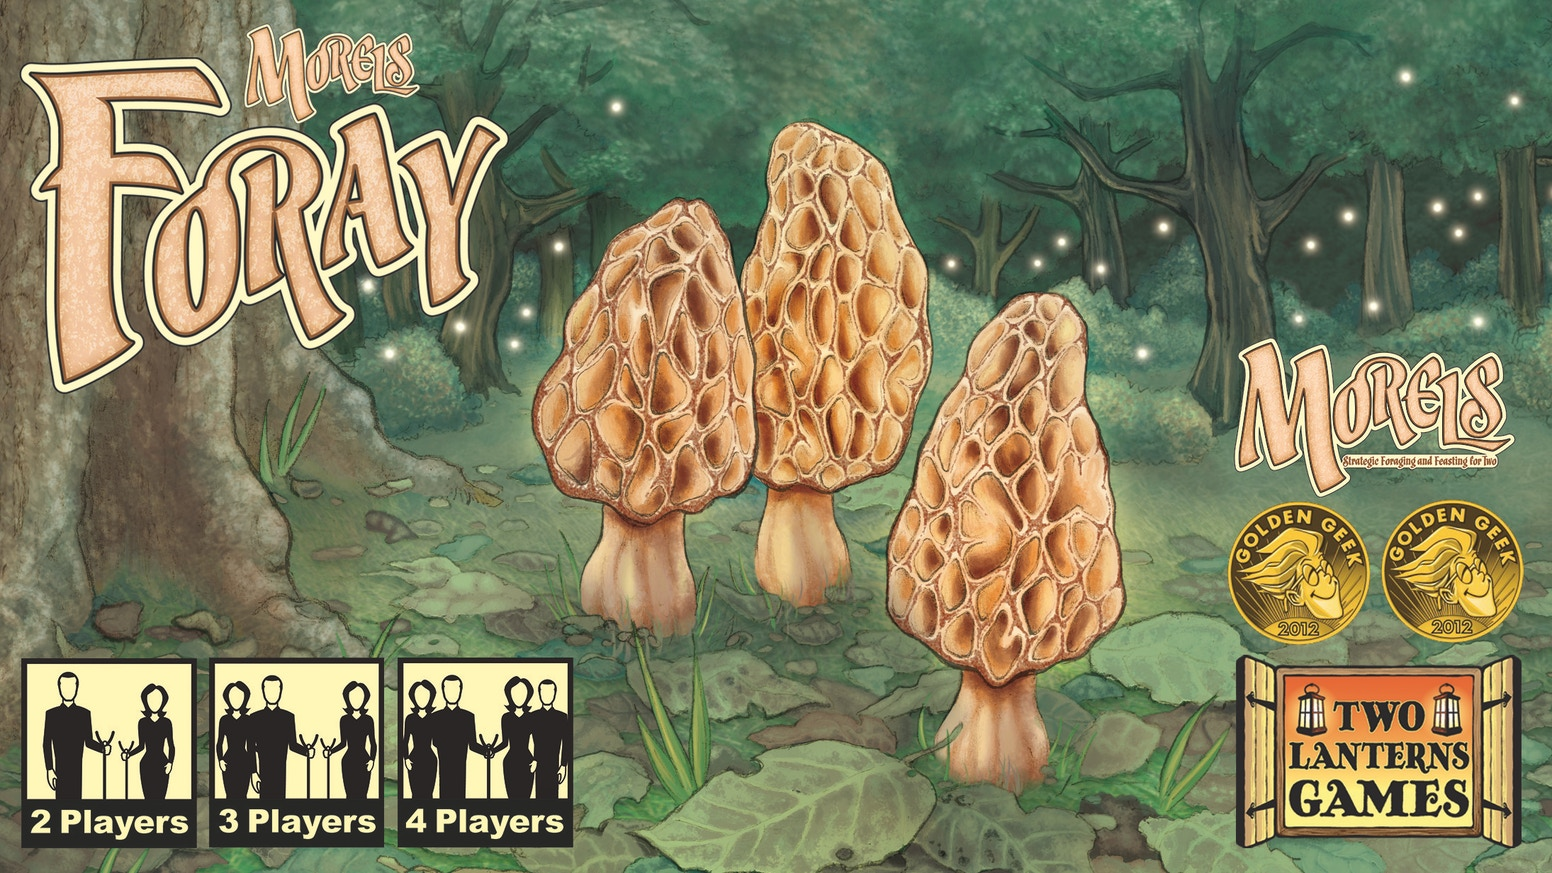 Foray expands hit 2-player game Morels with new characters, items, weather, and 2-4 player capability, each with its own unique system.